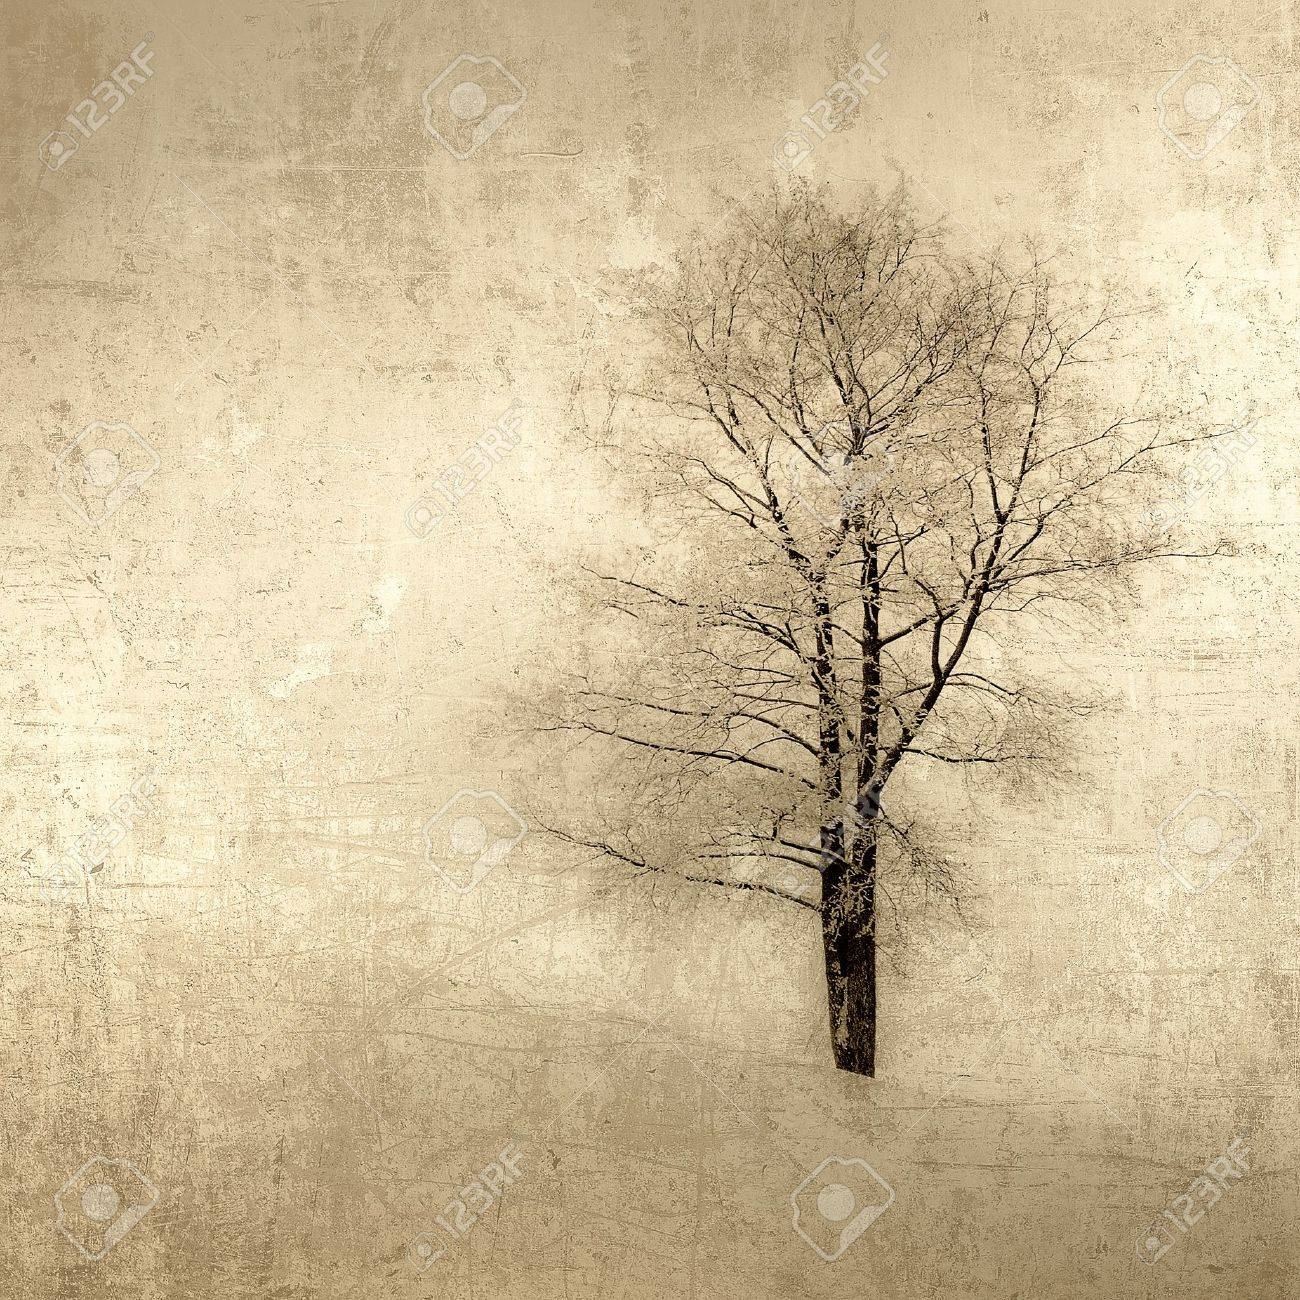 grunge image of a tree over vintage background Stock Photo - 16246630